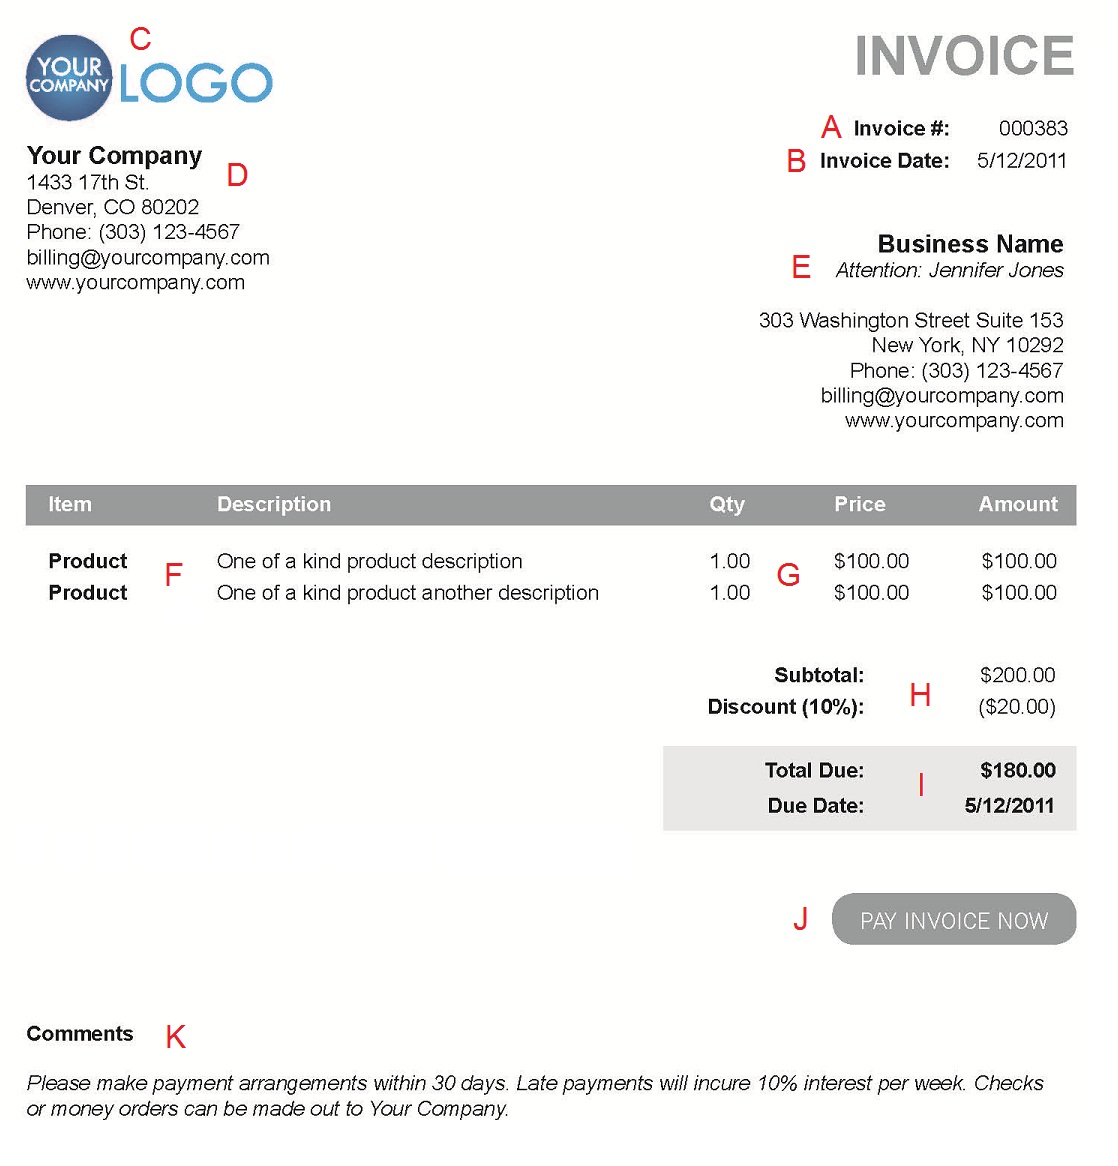 The 10 Different Sections of an Electronic Payment Invoice